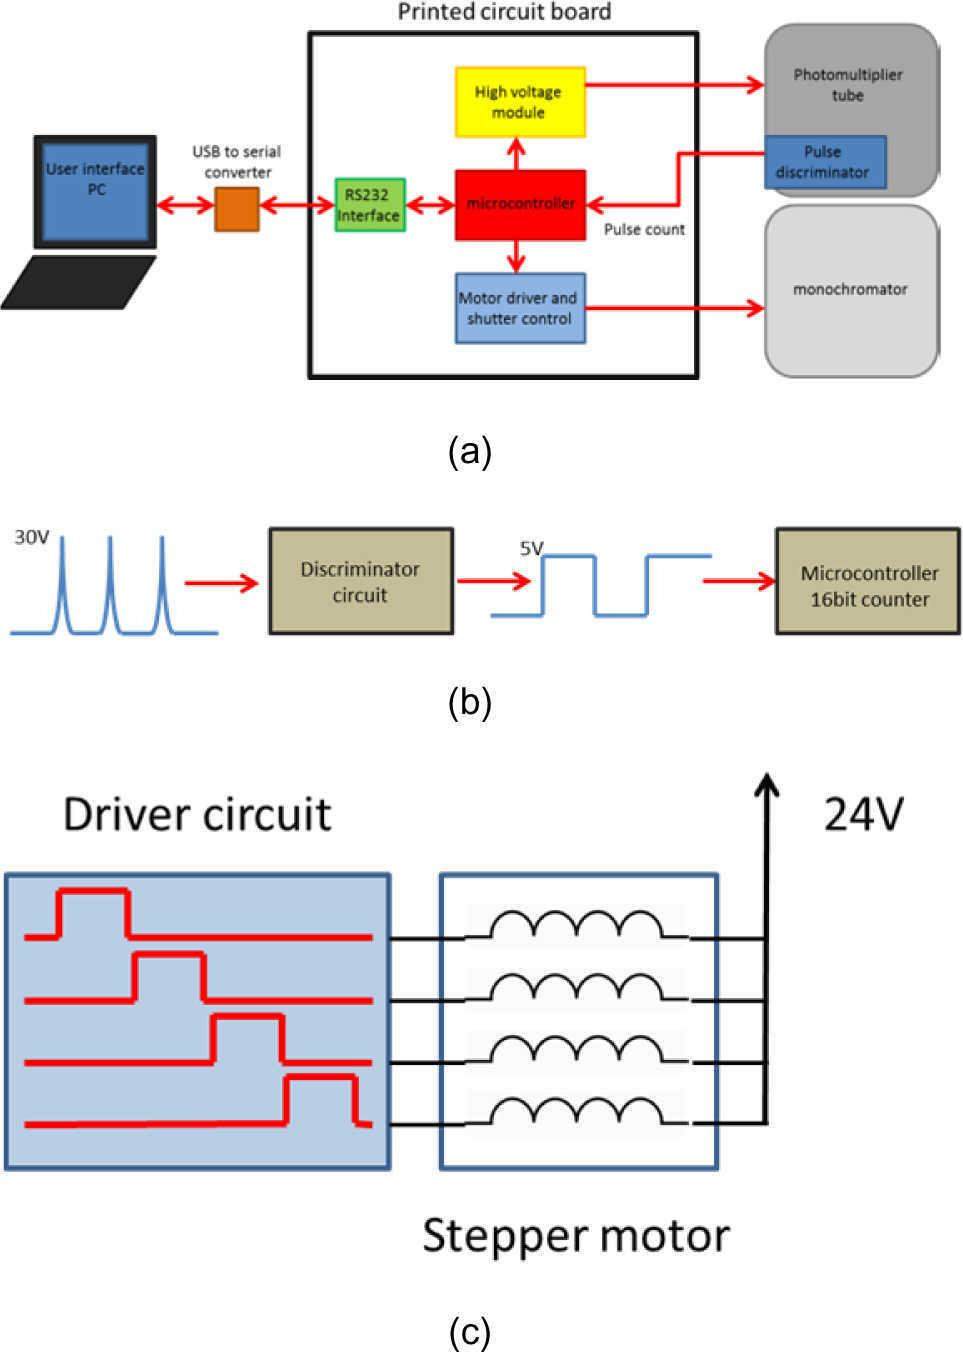 Control System Development For A Raman Spectrometer Using Programmable Integrated Circuit Mc908gr60acfje 8bit Microcontrollers Block Diagram The Rehabilitated Spectroscopy Equipment Motor Driver